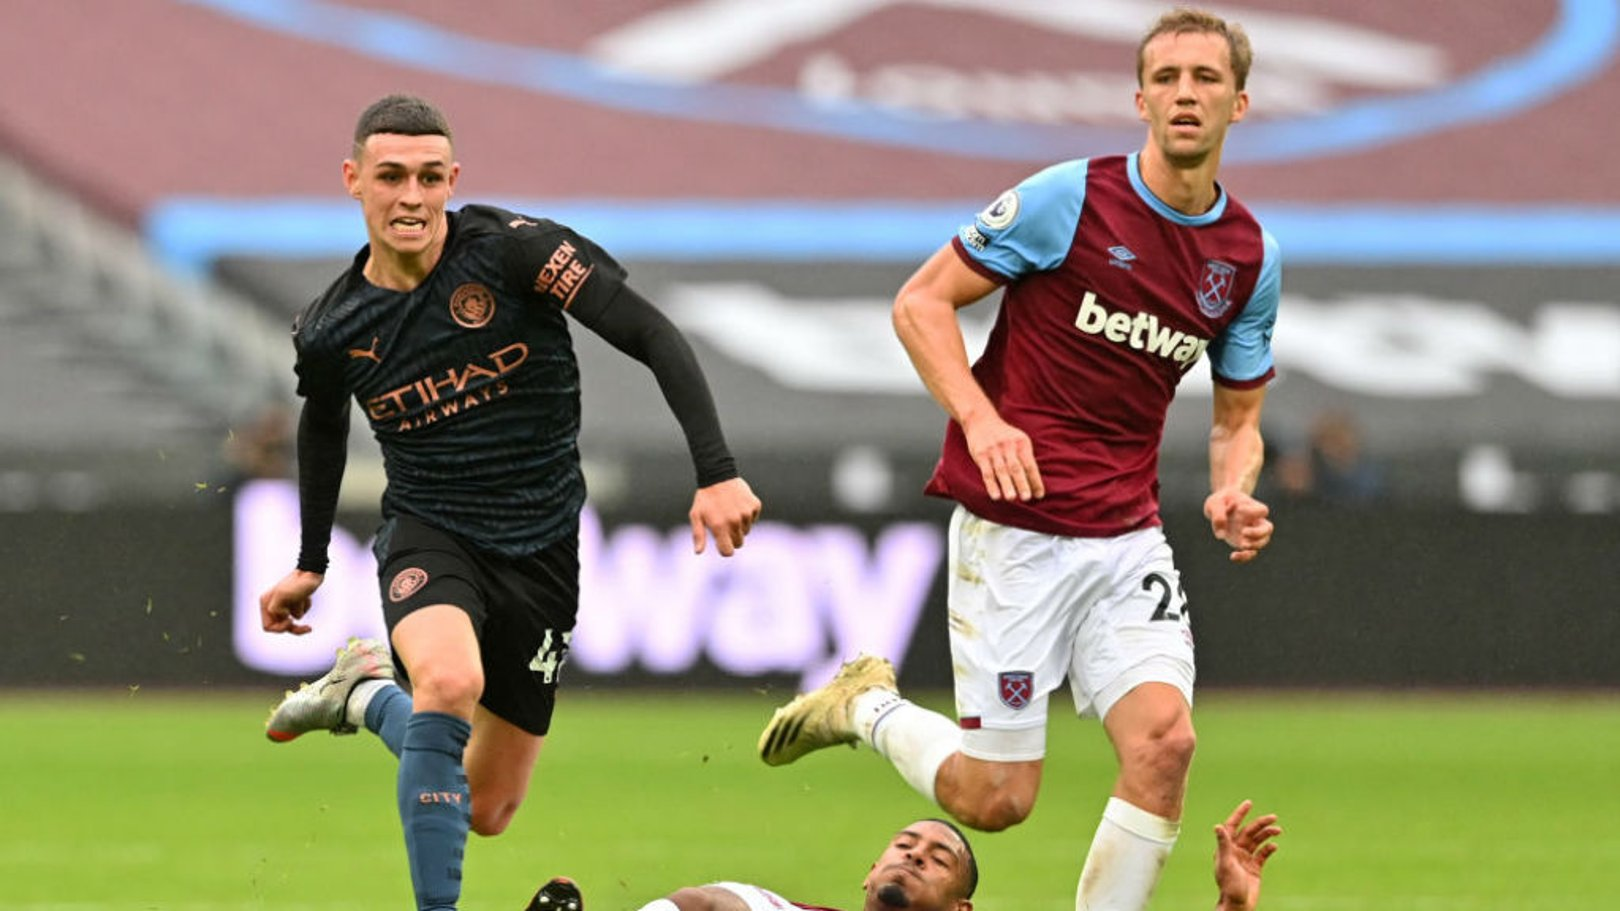 Mixed emotions for Foden after Hammers strike